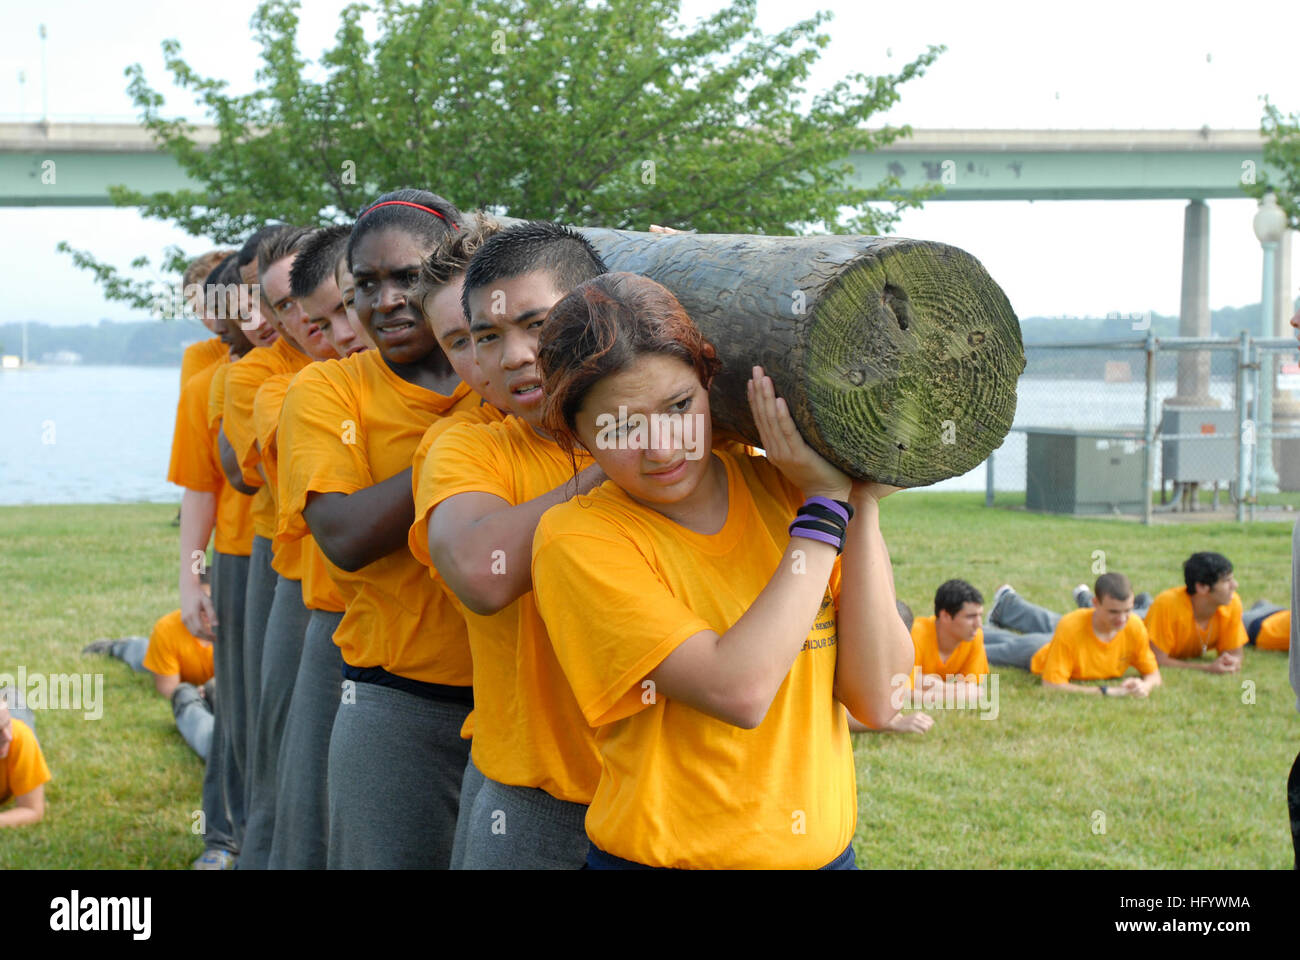 110622-N-AC575-002 ANNAPOLIS, Md. (June 22, 2011) High school students participate in log PT during the 2011 Summer Stock Photo